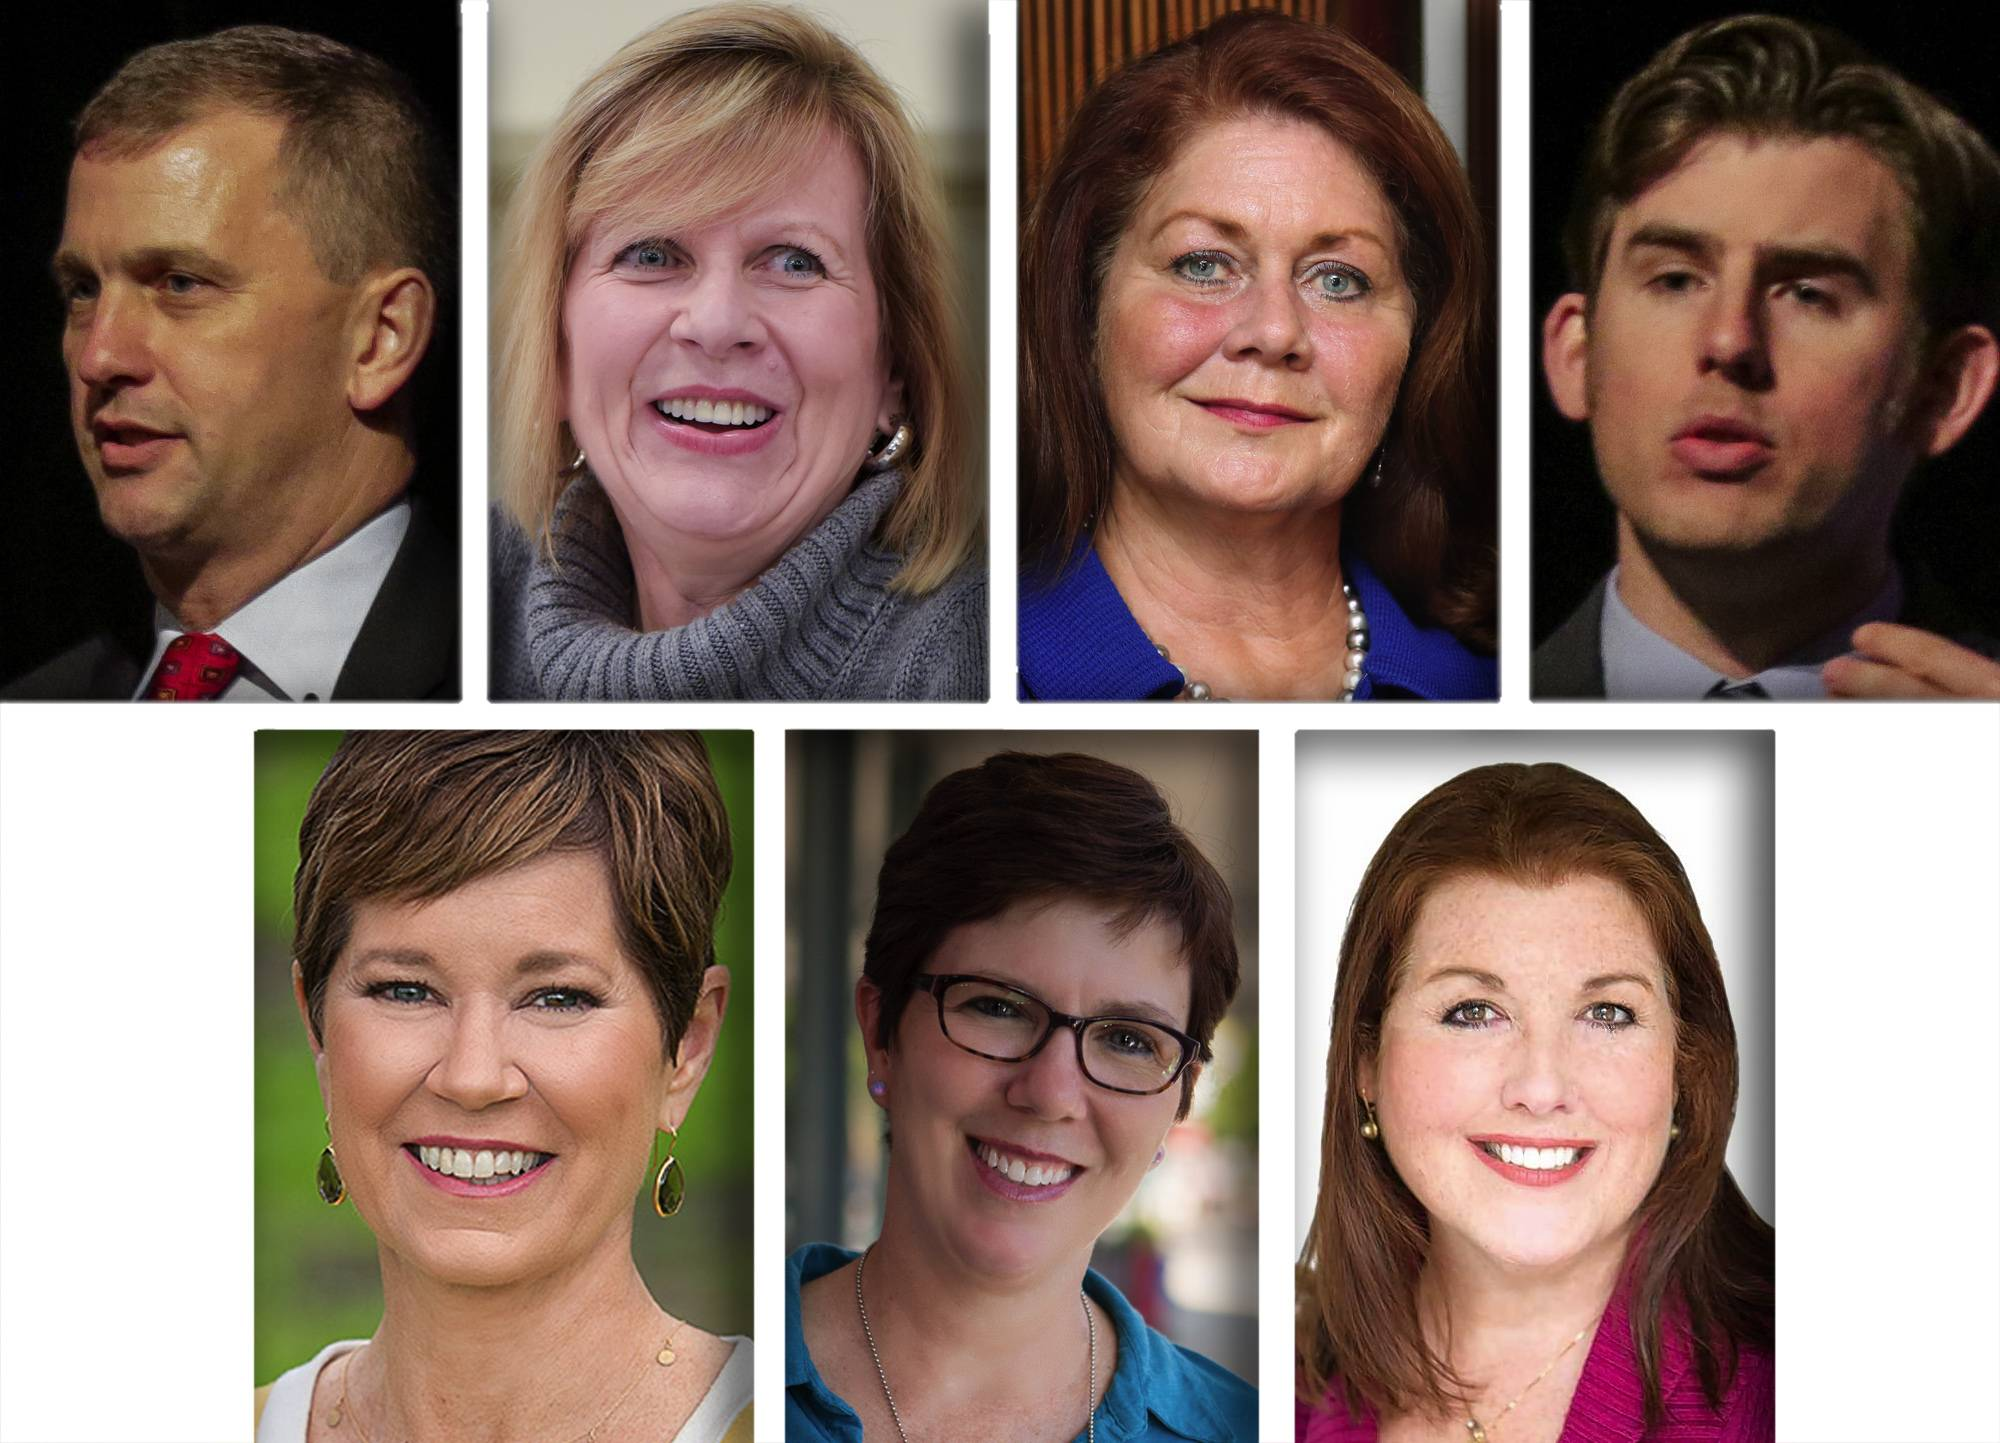 Democratic candidates for the party's nomination to seek the 6th District seat in Congress are, top row from left, Sean Casten, Carole Cheney, Amanda Howland and Ryan Huffman and, bottom row from left, Kelly Mazeski, Becky Anderson Wilkins and Jennifer Zordani.